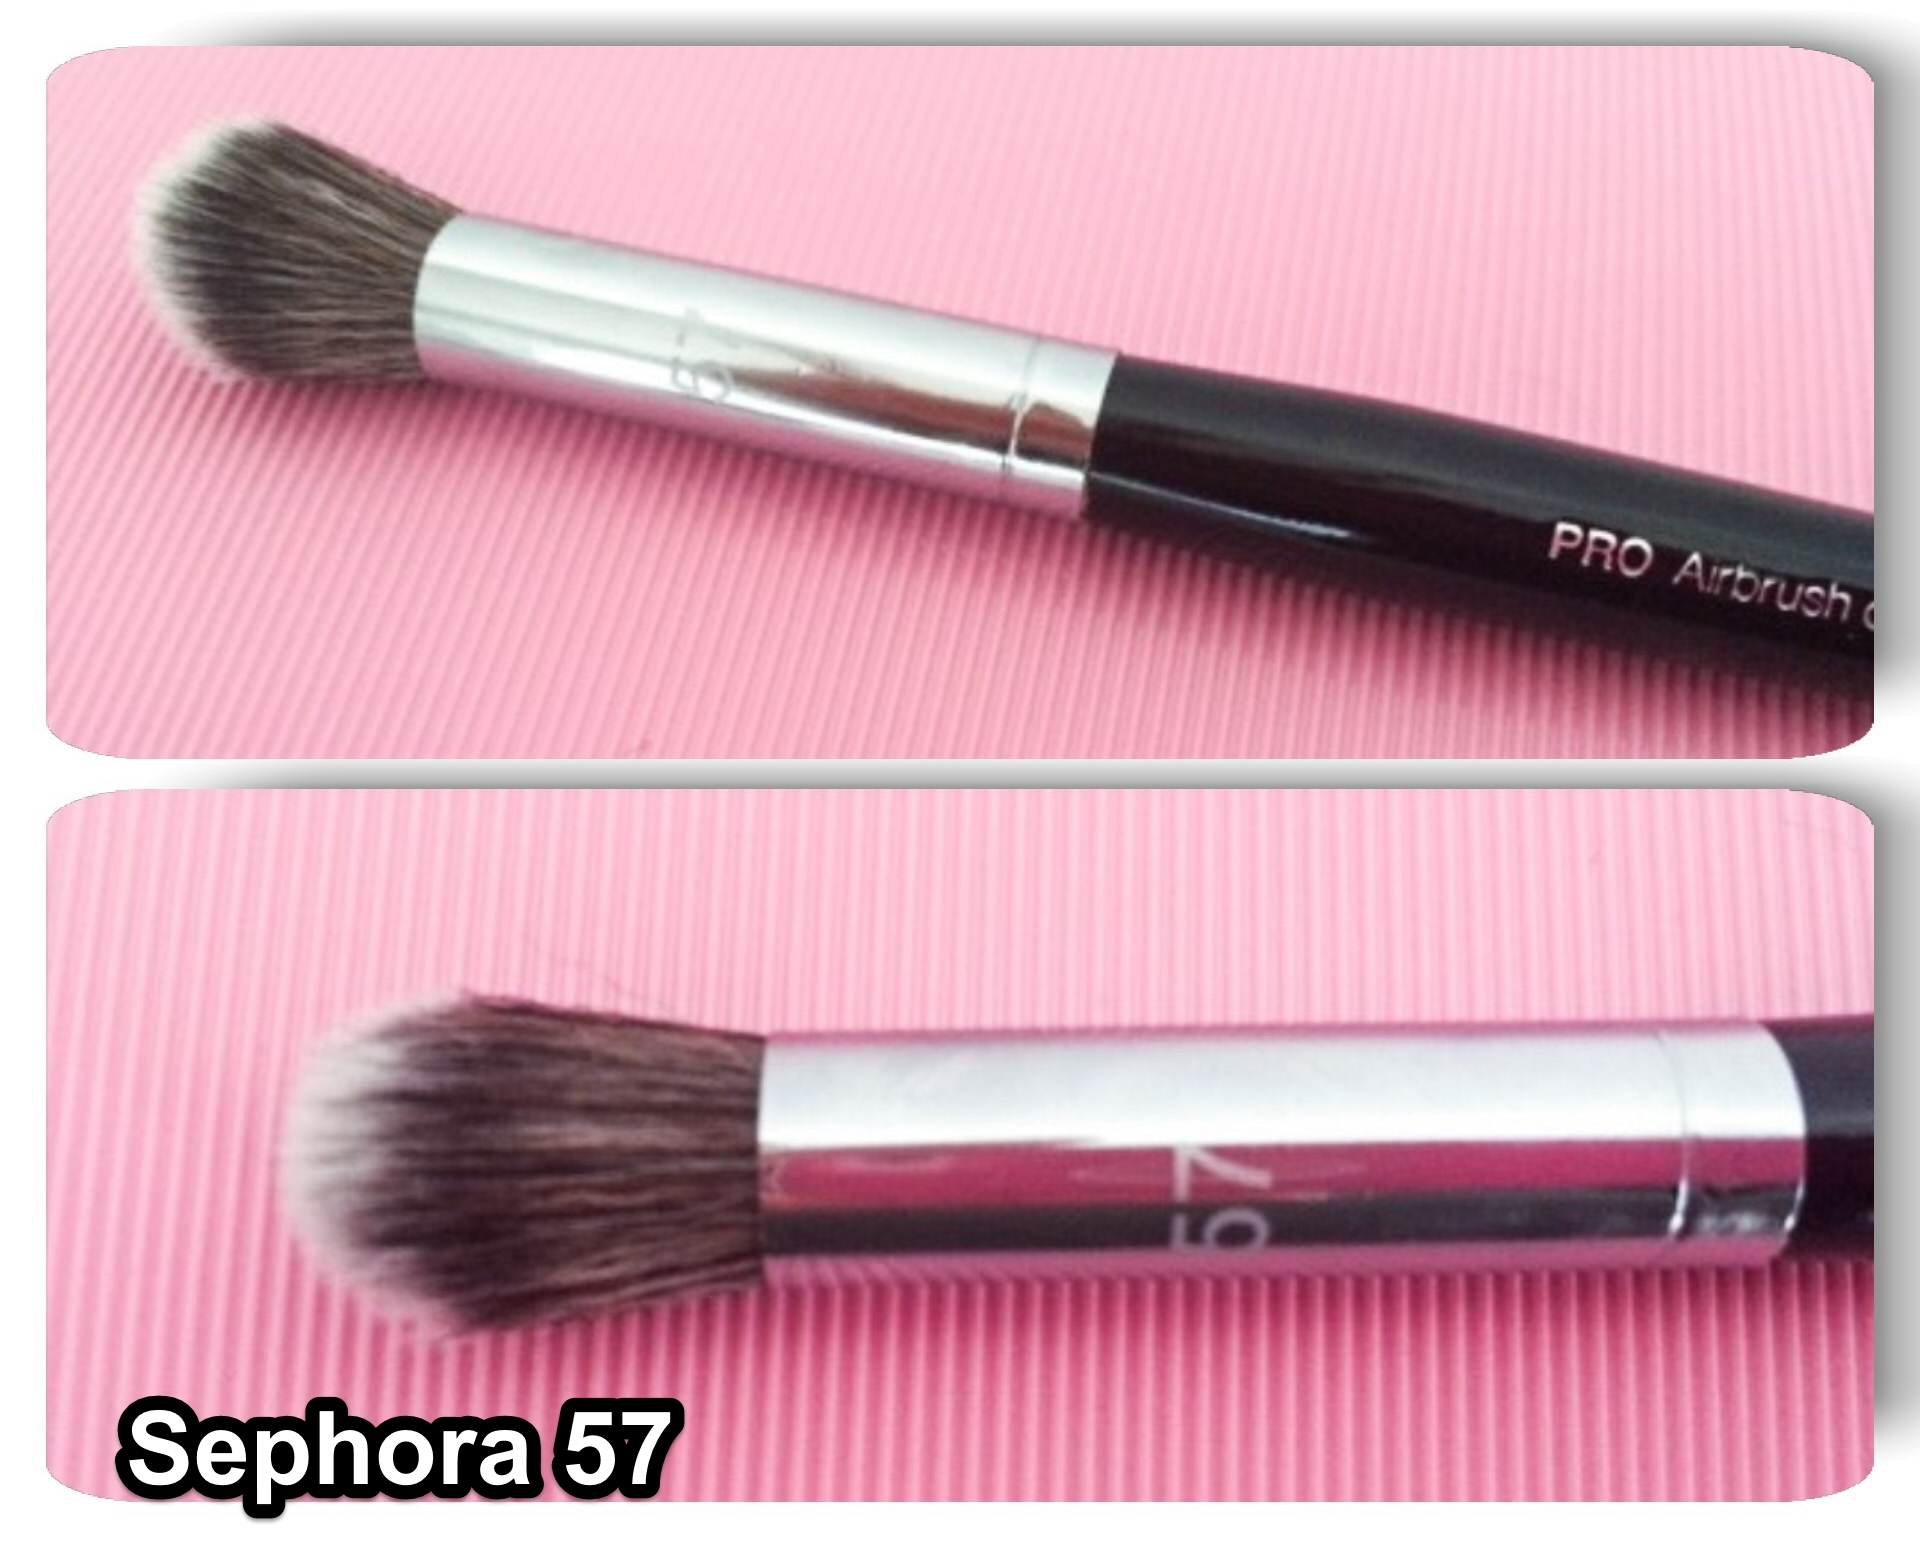 PRO Blending Brush #27 by Sephora Collection #11